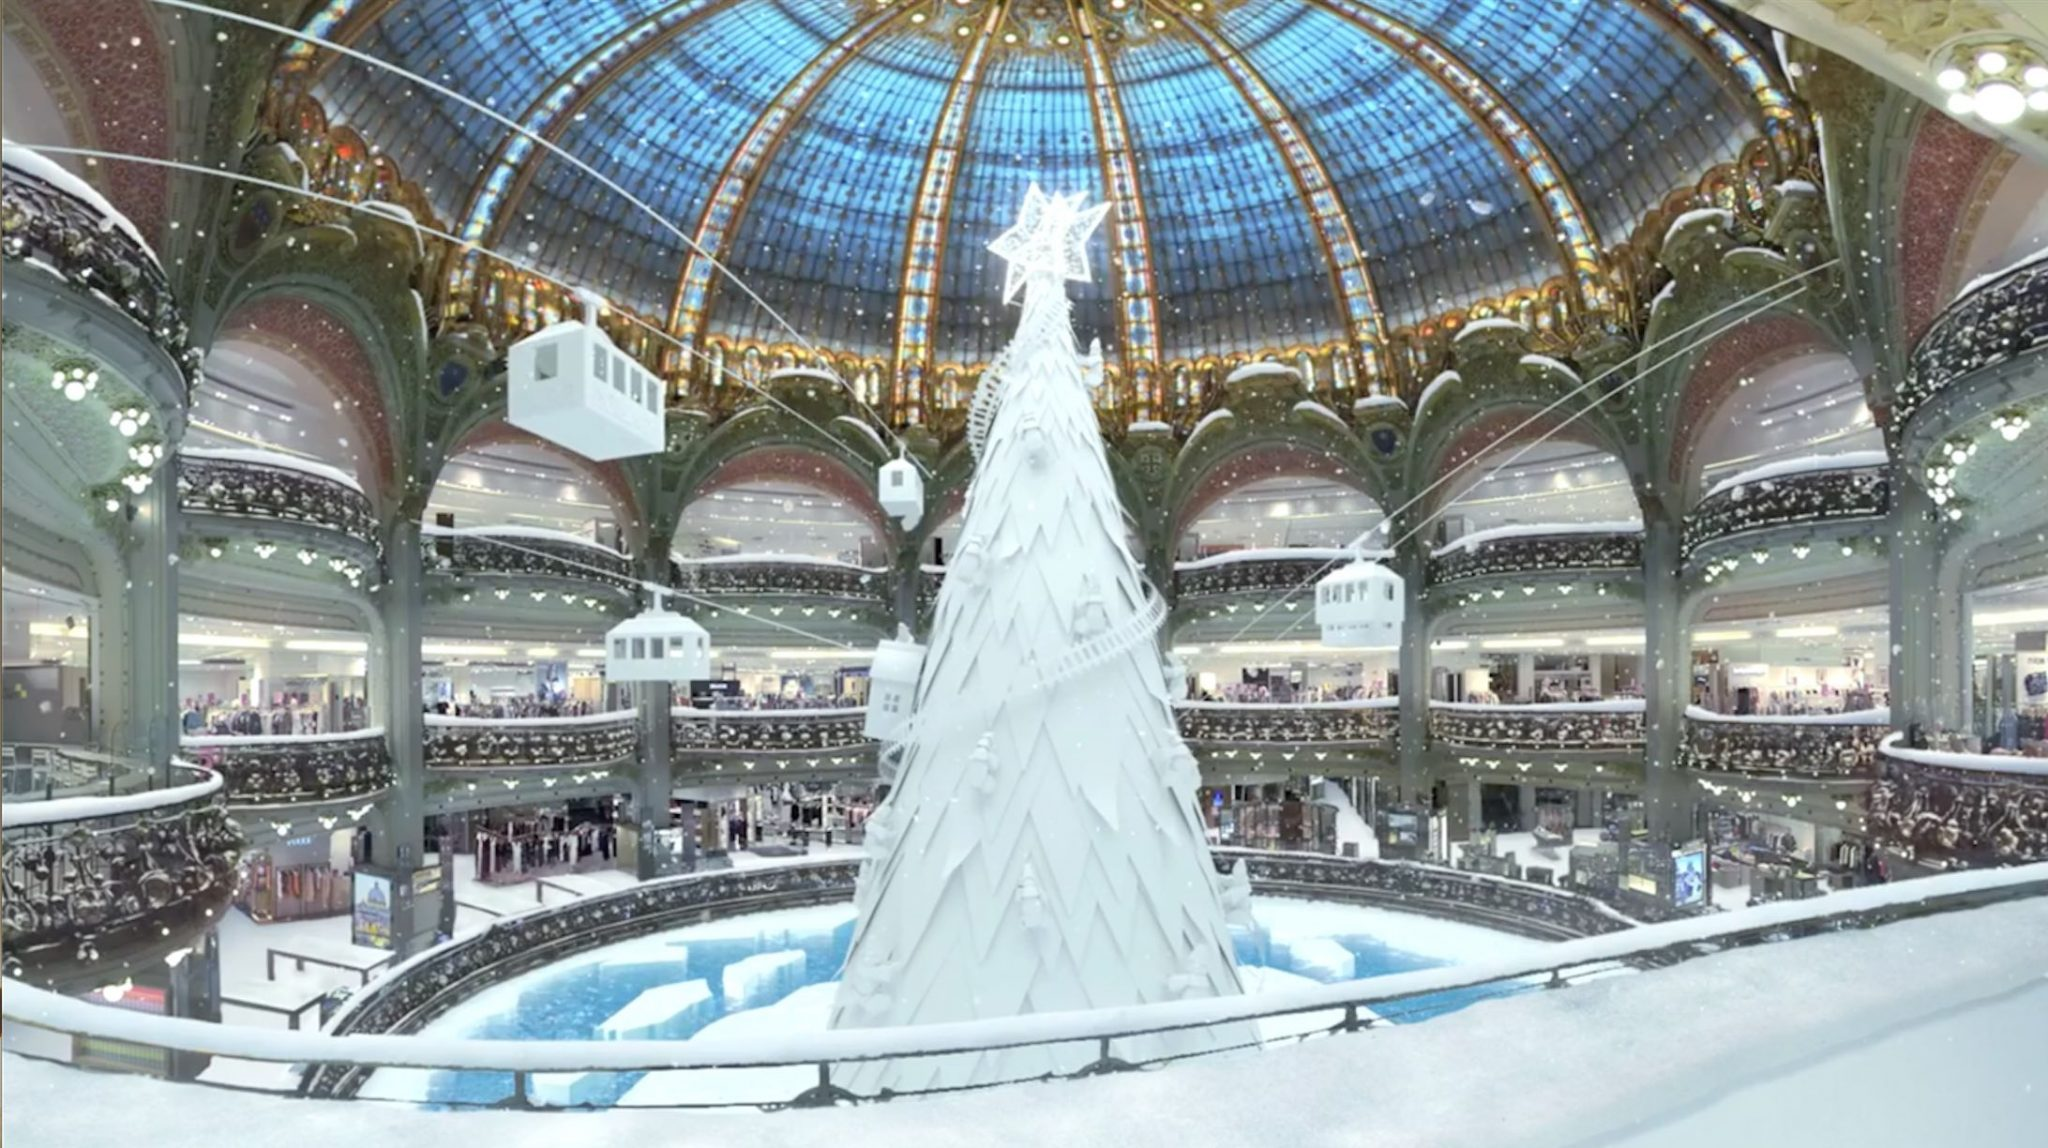 The Top 10 Most Beautiful Christmas Trees In The World